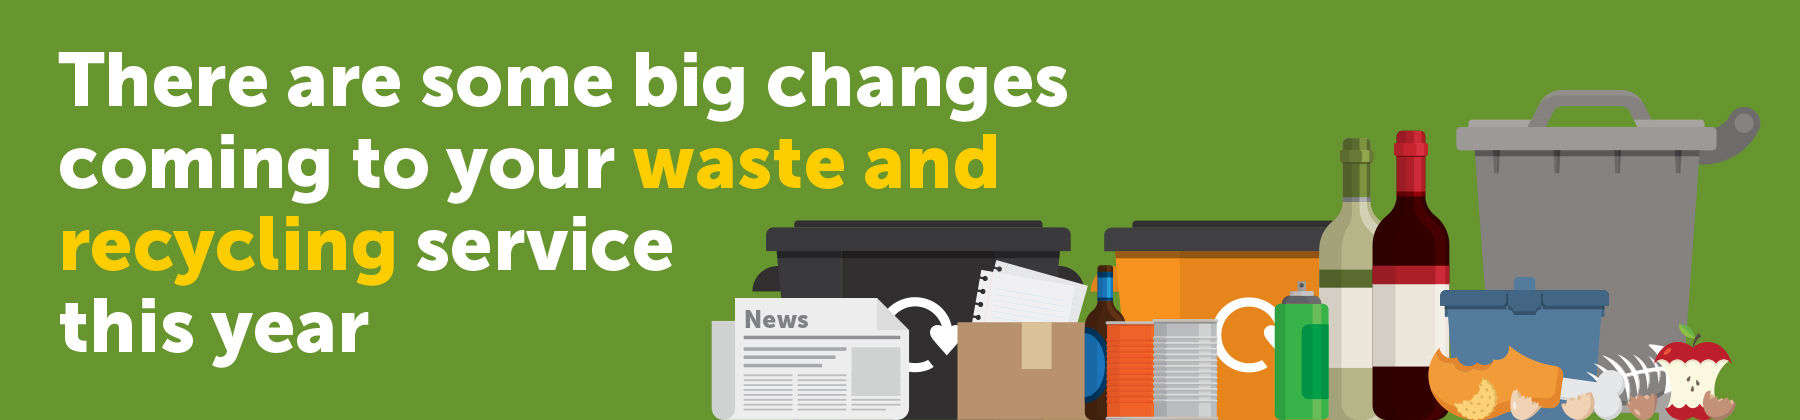 Banner promoting changes to waste and recycling